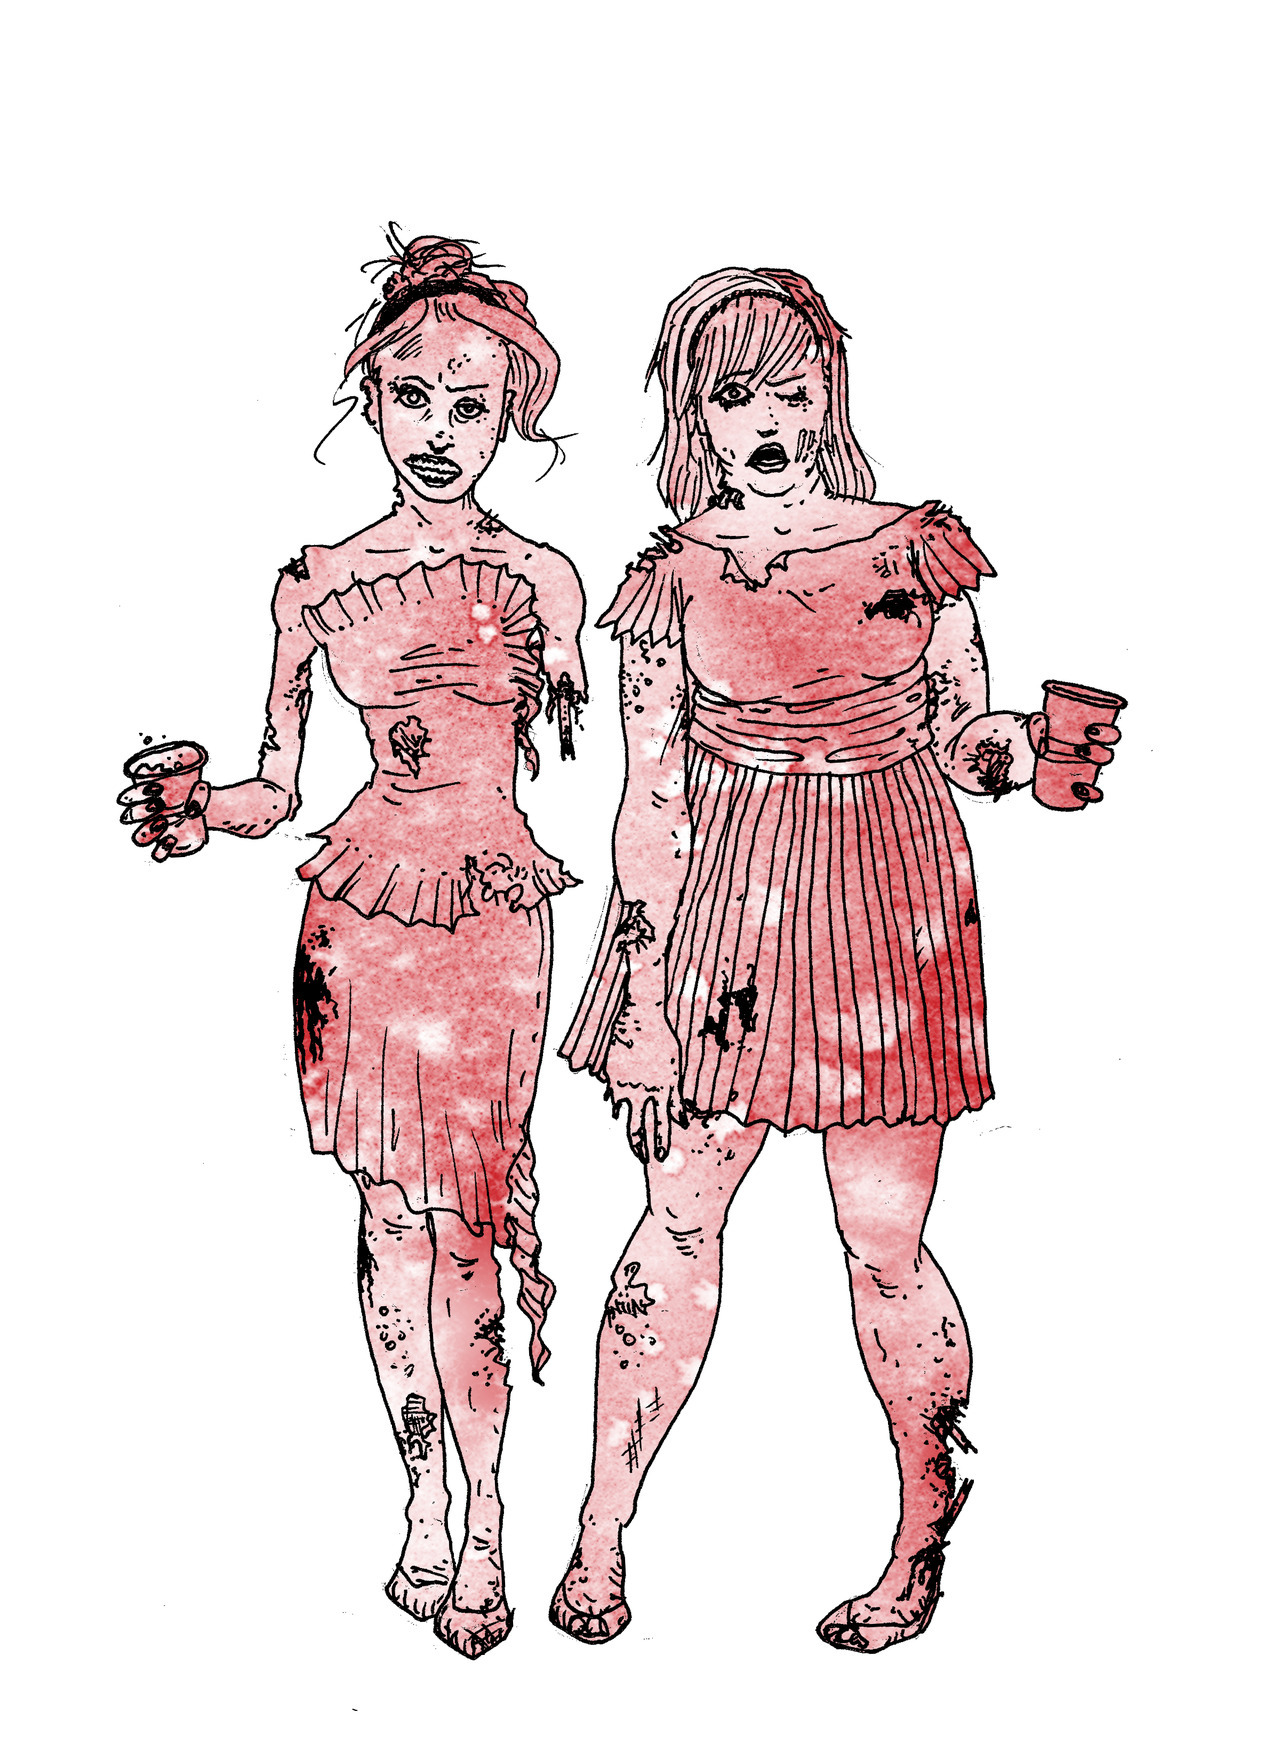 Zombie Bridesmaids. All the single ladies. All the single ladies.  A Halloween party invitation for a friend in D.C. Starting at $17.50 Original art and writing © Jasey M. Crowl 2012 #zombiebridesmaids jaseycrowl.com & yourecolor.com